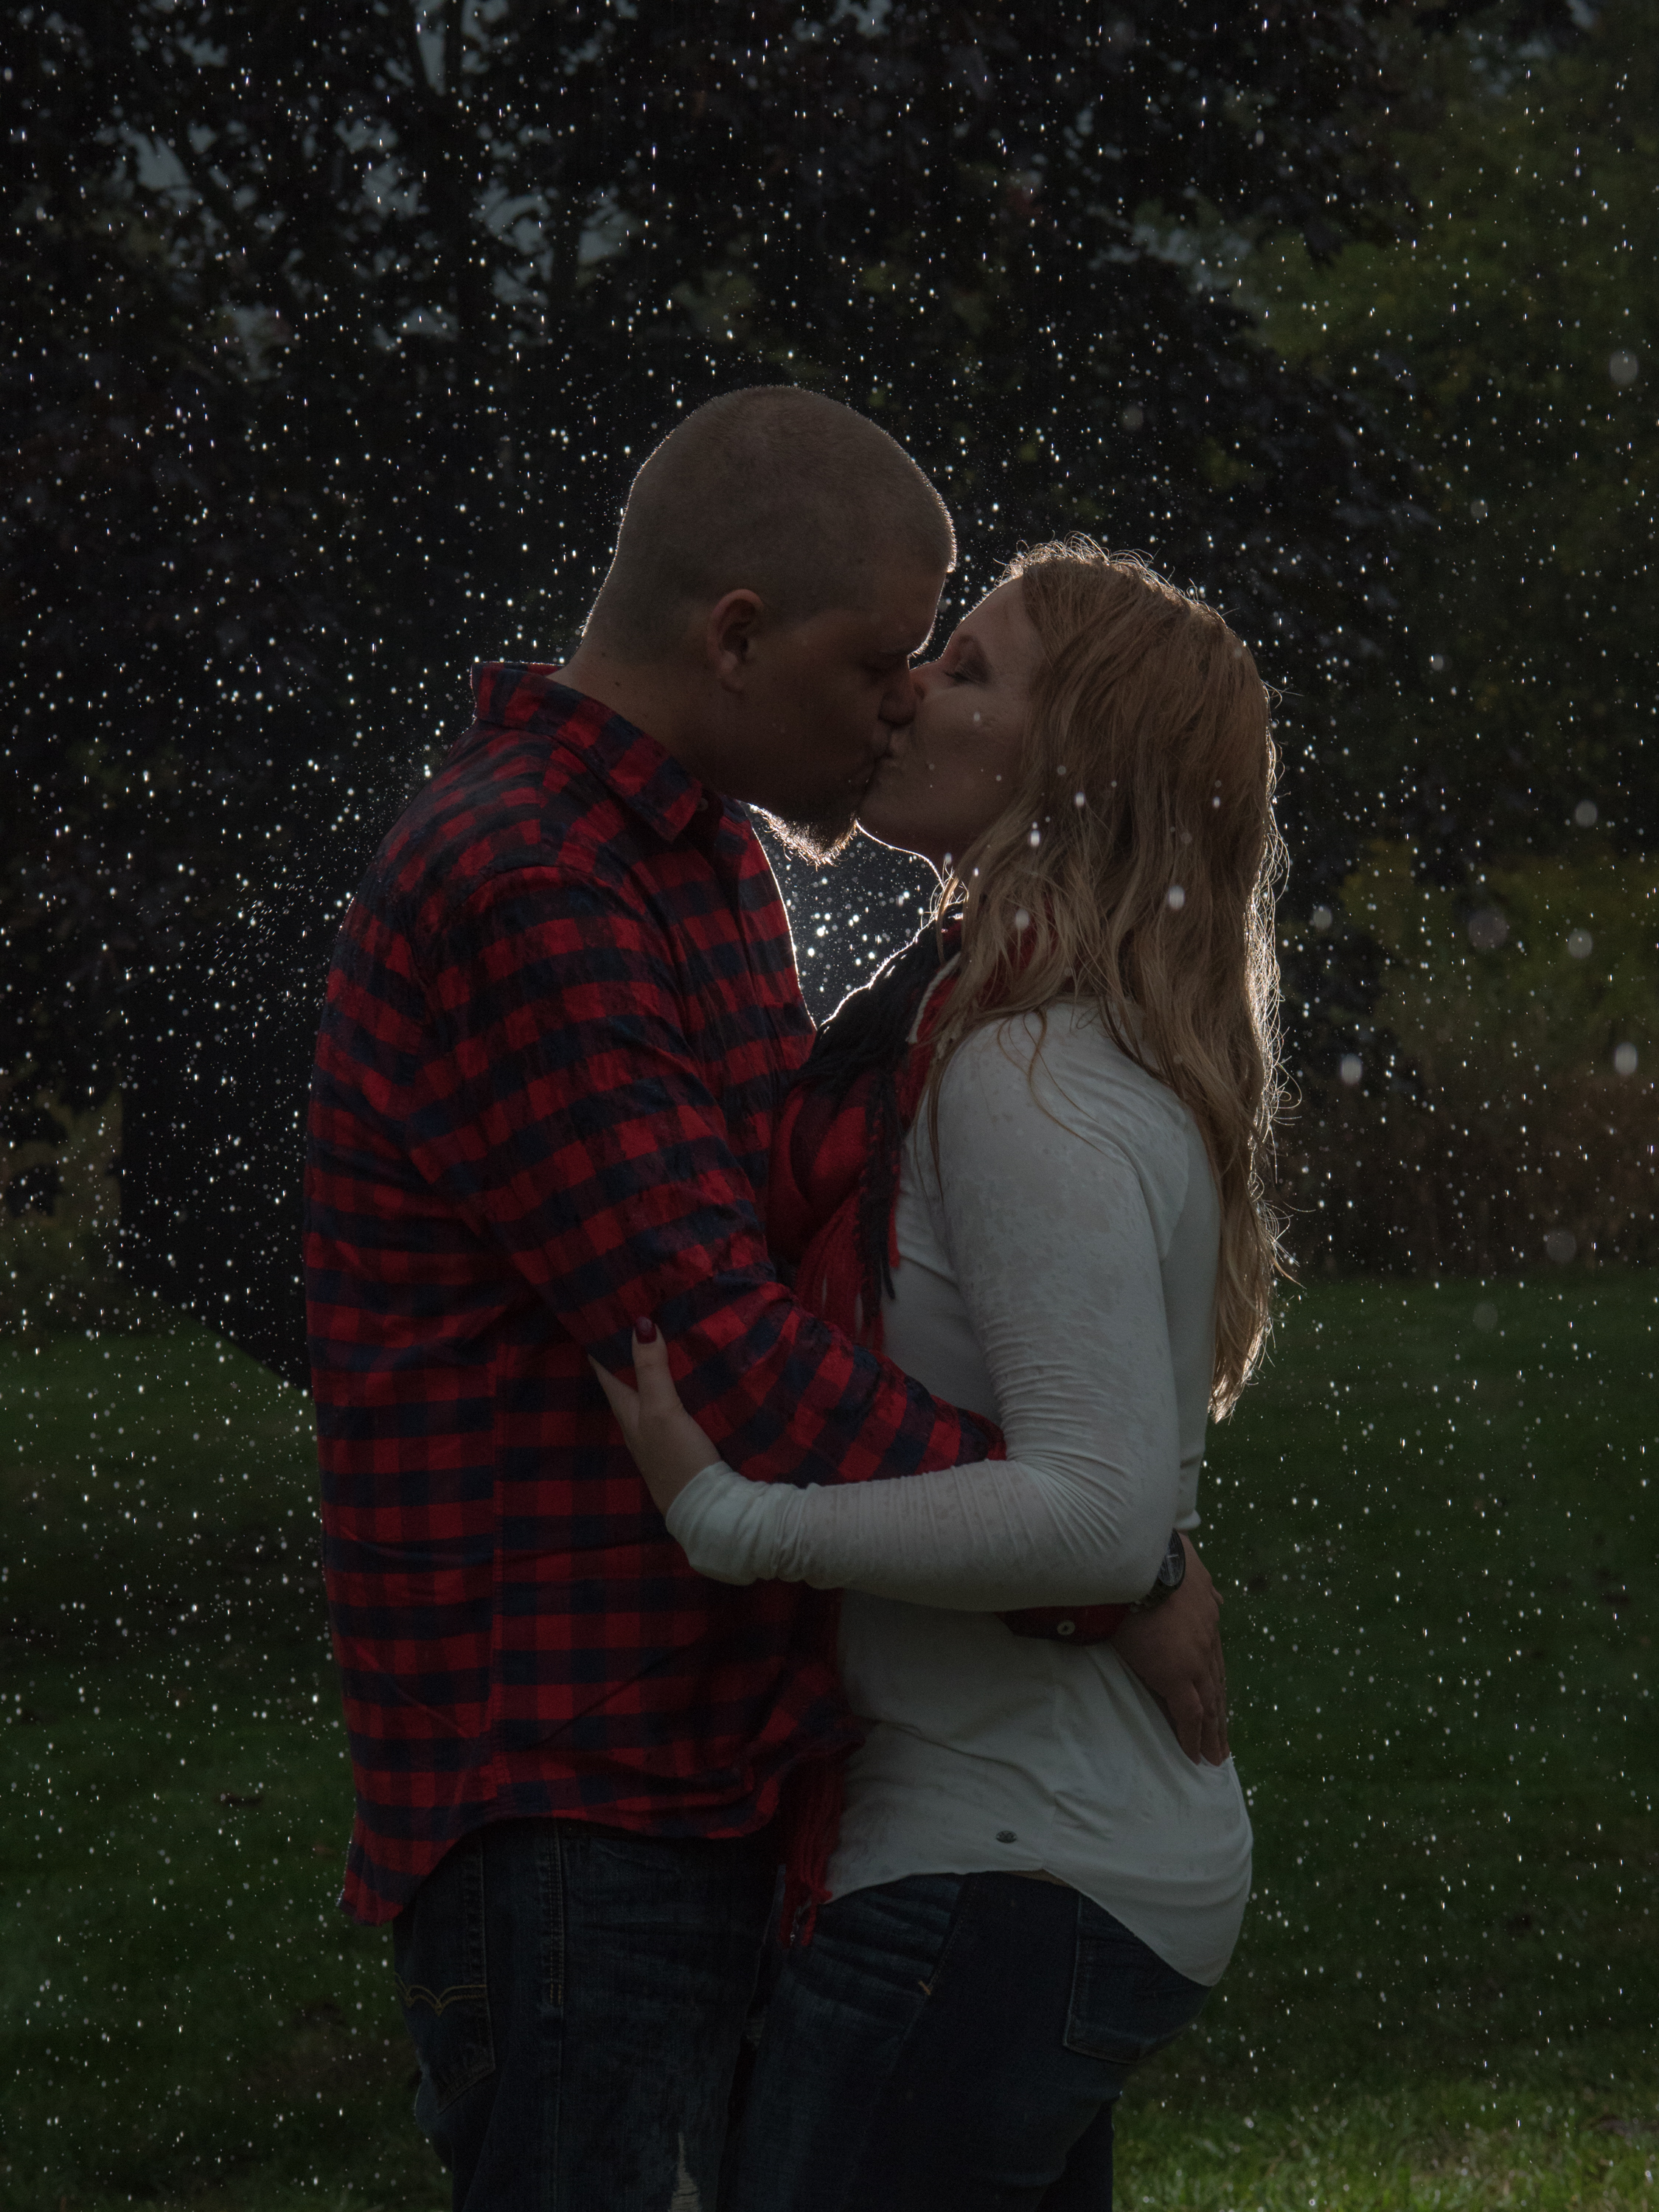 Engagement portraits in the rain